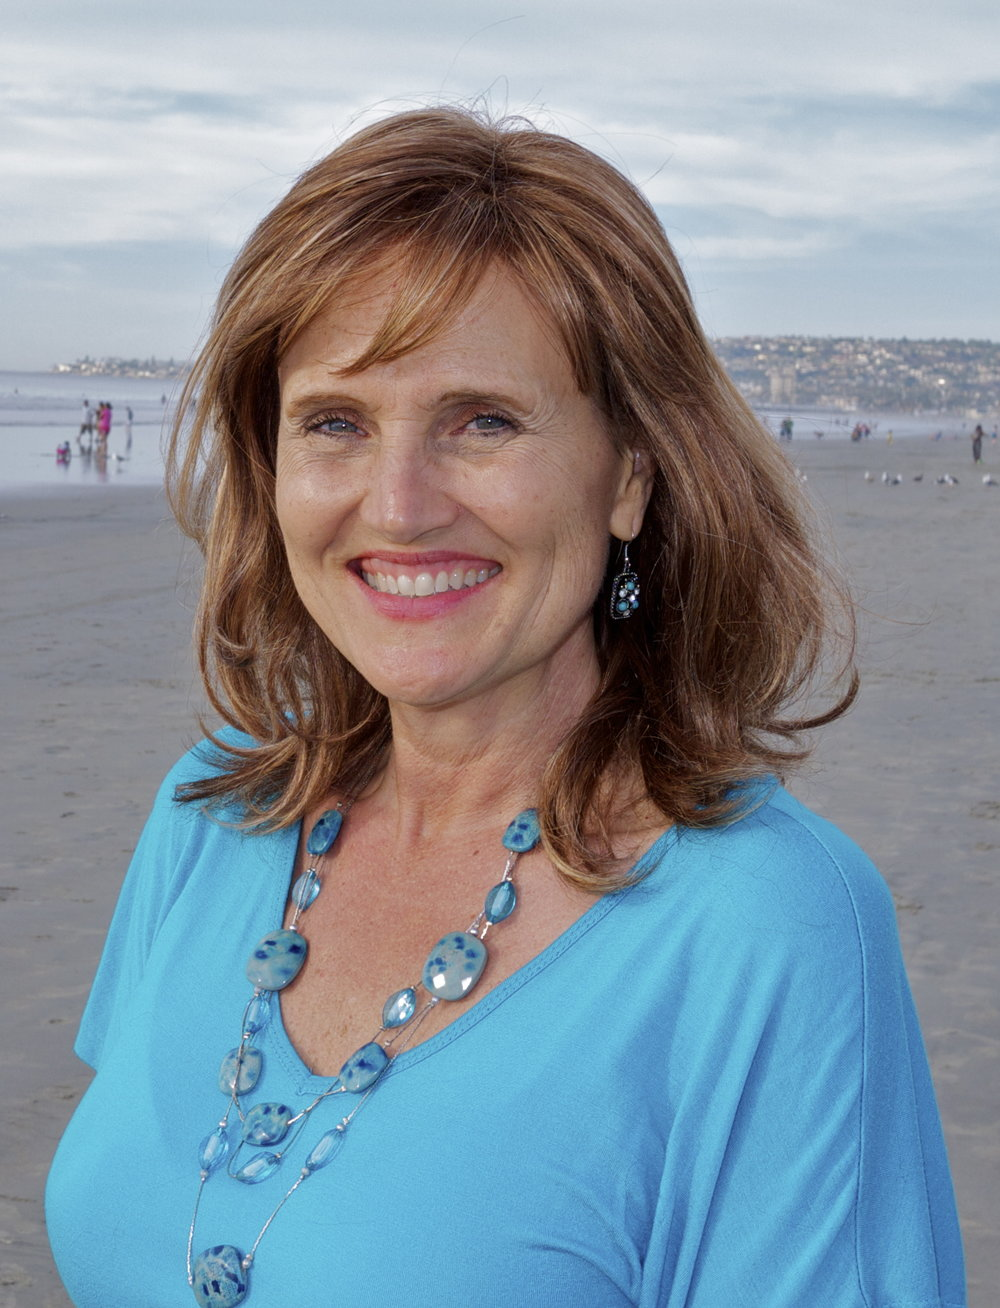 About Carolyn Jaynes - I teach empowering metaphysical classes and offer individual consulting on New Age topics such as trusting your intuition, manifesting, being aware of spirit signs, and provide power tools to raise your spiritual vibration to bring more good into your life.I am the 5-Star Amazon Author of the inspiring book of spiritual adventures, Sprinkles from Heaven – Stories of Serendipity (2014) and the follow-up book, Twinkles from Heaven – The Mystical in the Mundane (2017).I earned my master's degree in Counseling Psychology at National University in San Diego, California, and I worked for many years a Support Group Facilitator, Licensed Social Worker, and Certified Alcohol & Drug Educator. (CAADE)I taught adult classes at San Diego State University Research Foundation, OASIS San Diego, Unity Center of Mira Mesa, Alexandria Institute, libraries, Senior Centers, churches, temples, and Seaside Center for Spiritual Living.